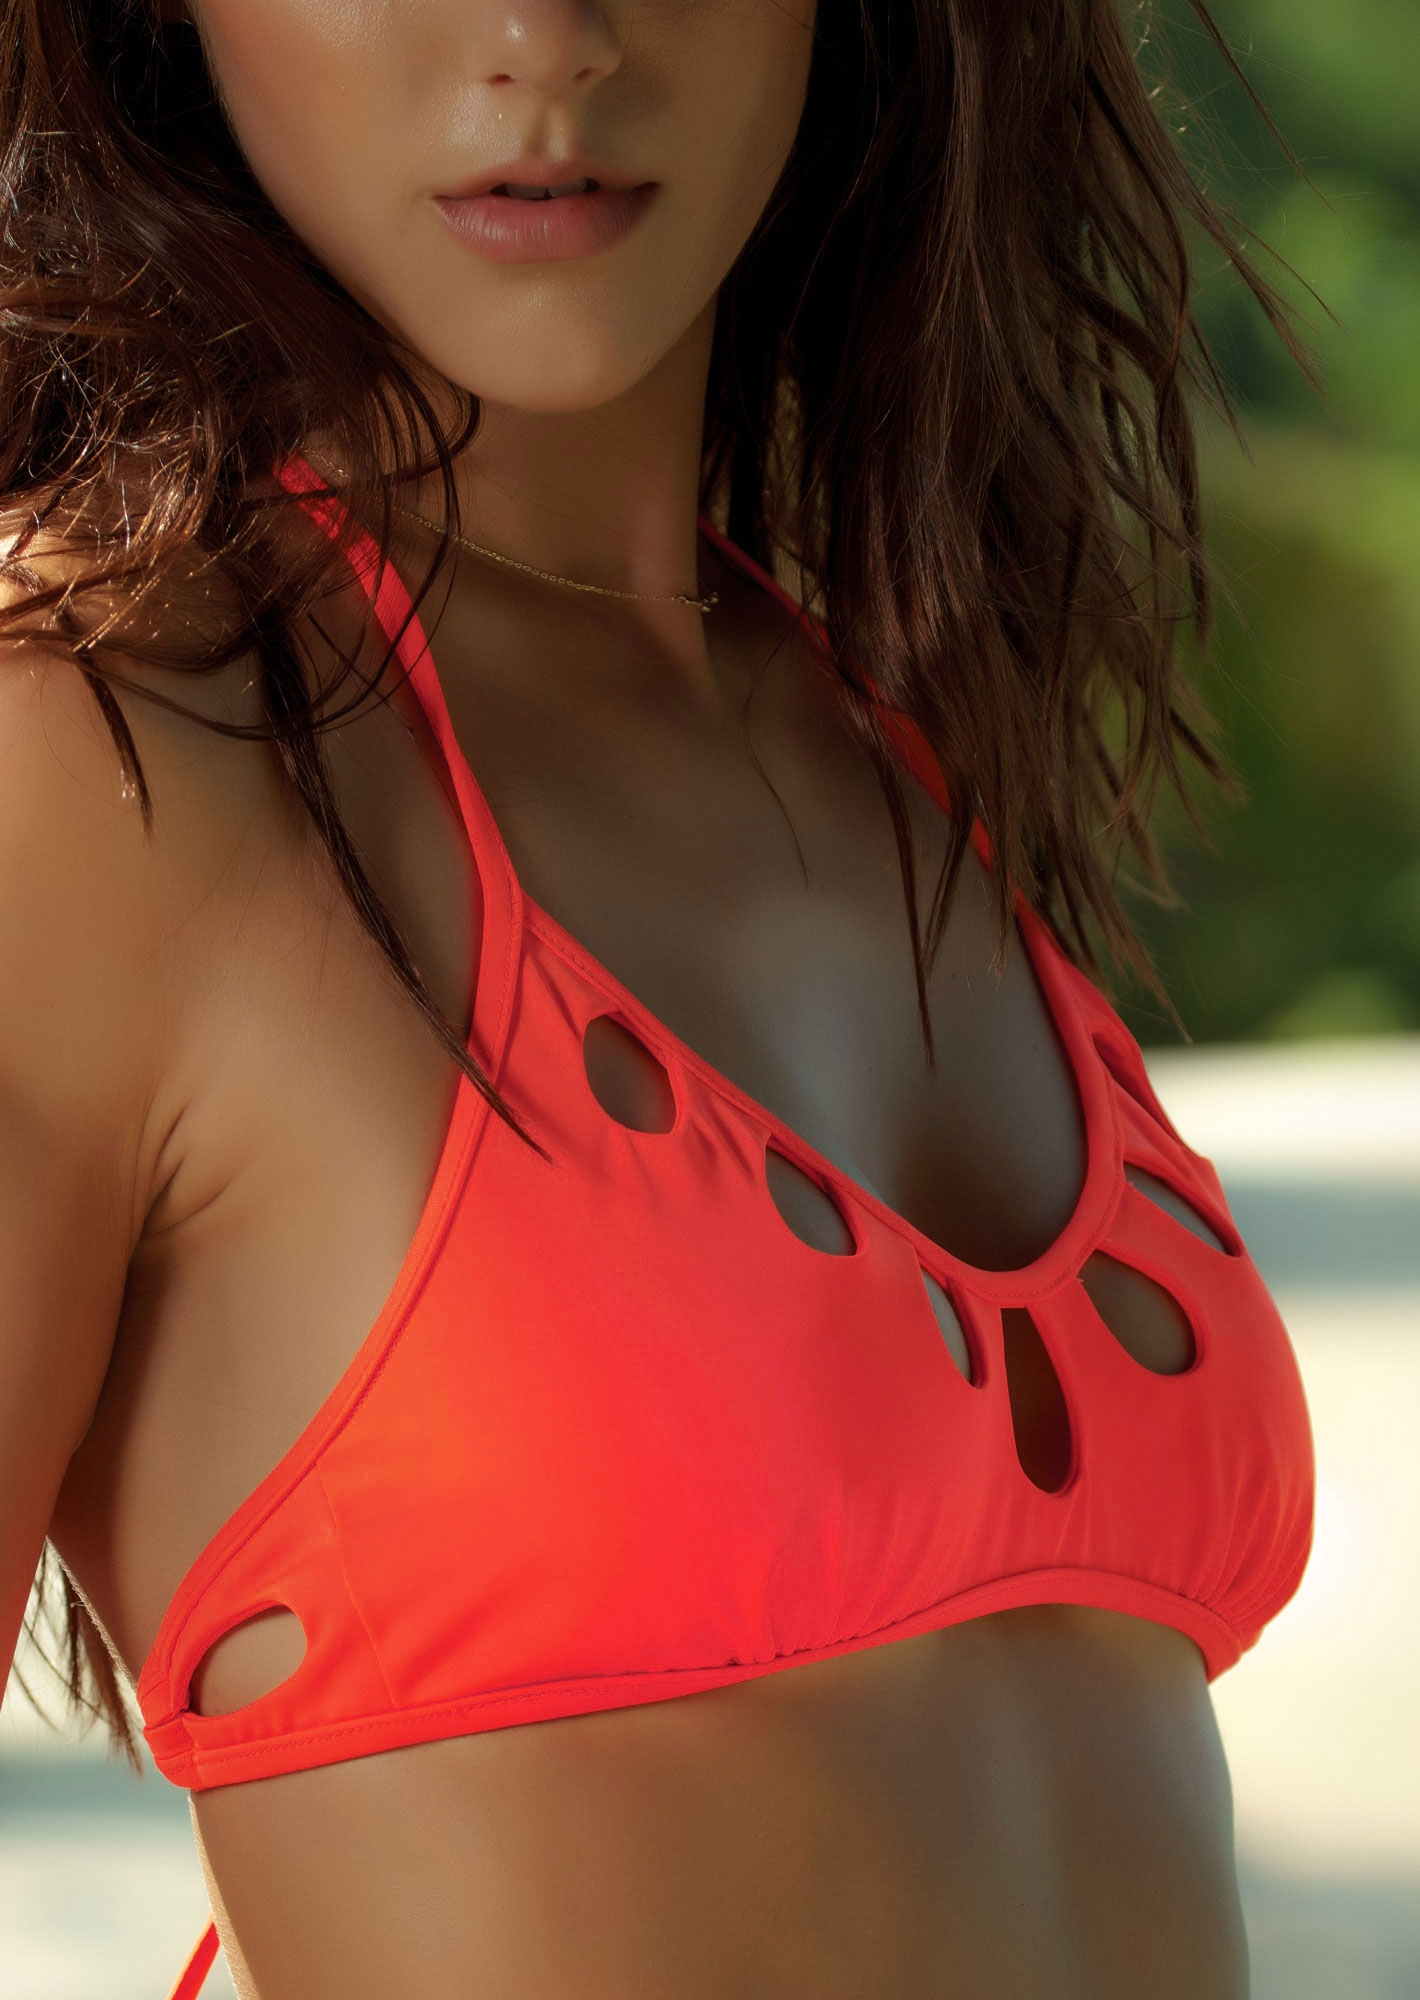 779b2ca950 Peek-A-Boo Halter Bralette Bikini Top in Neon Red Orange - TeenyB ...